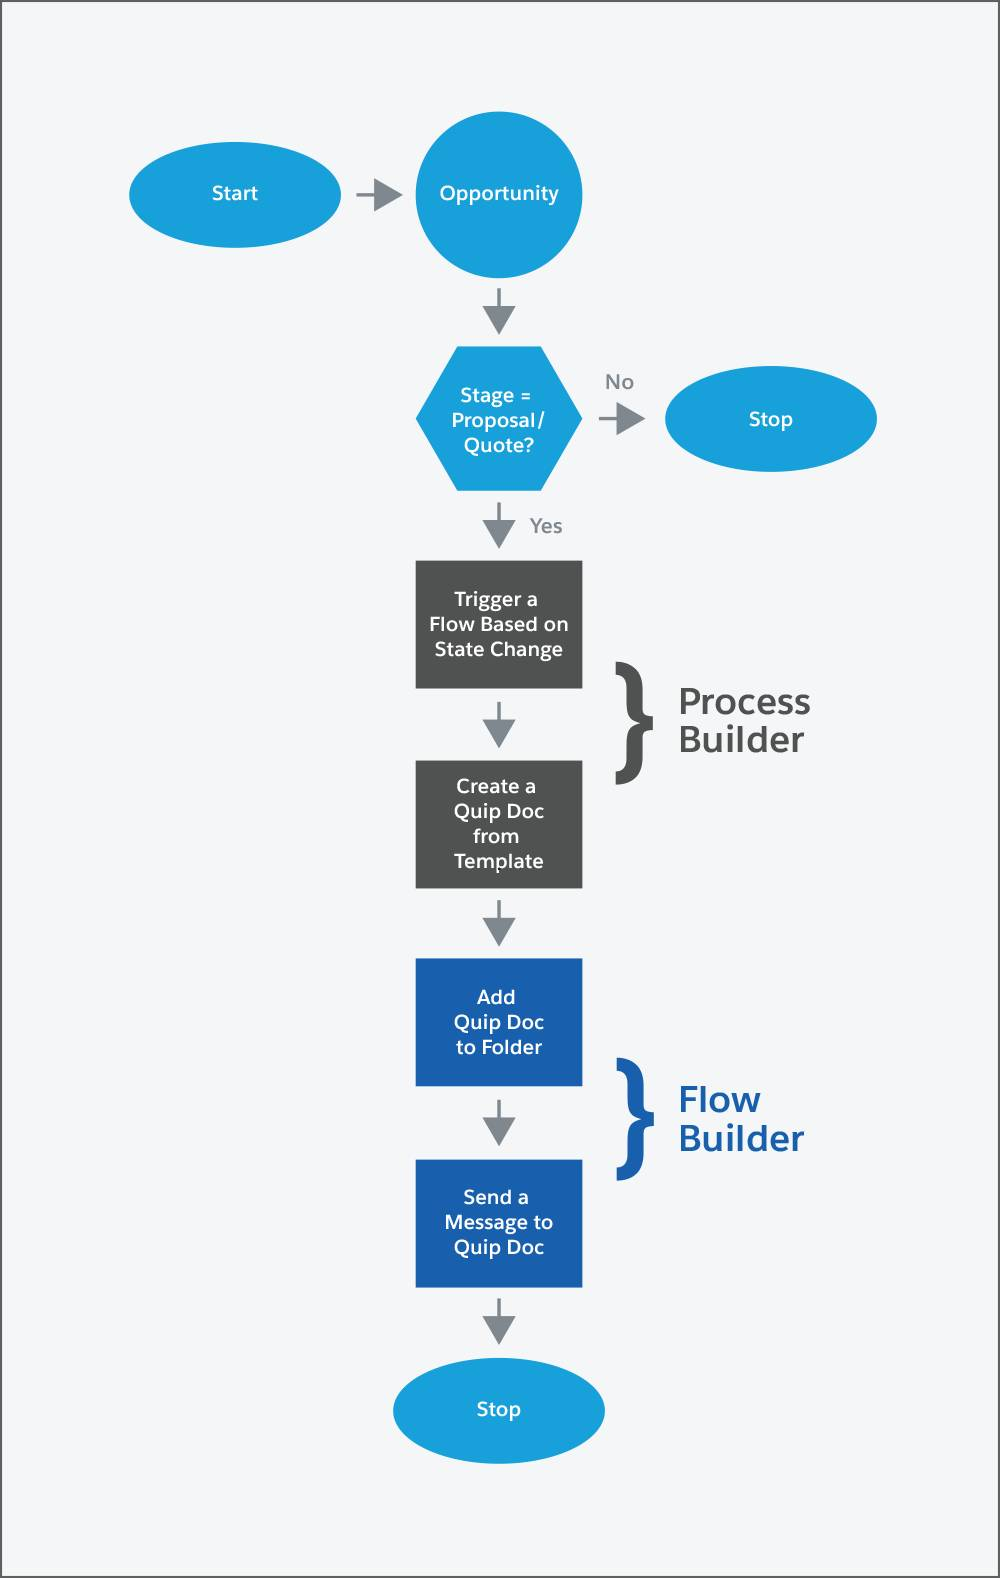 Decision tree diagram showing opportunity and stage, as well as different actions Process Builder and Flow Builder can take.